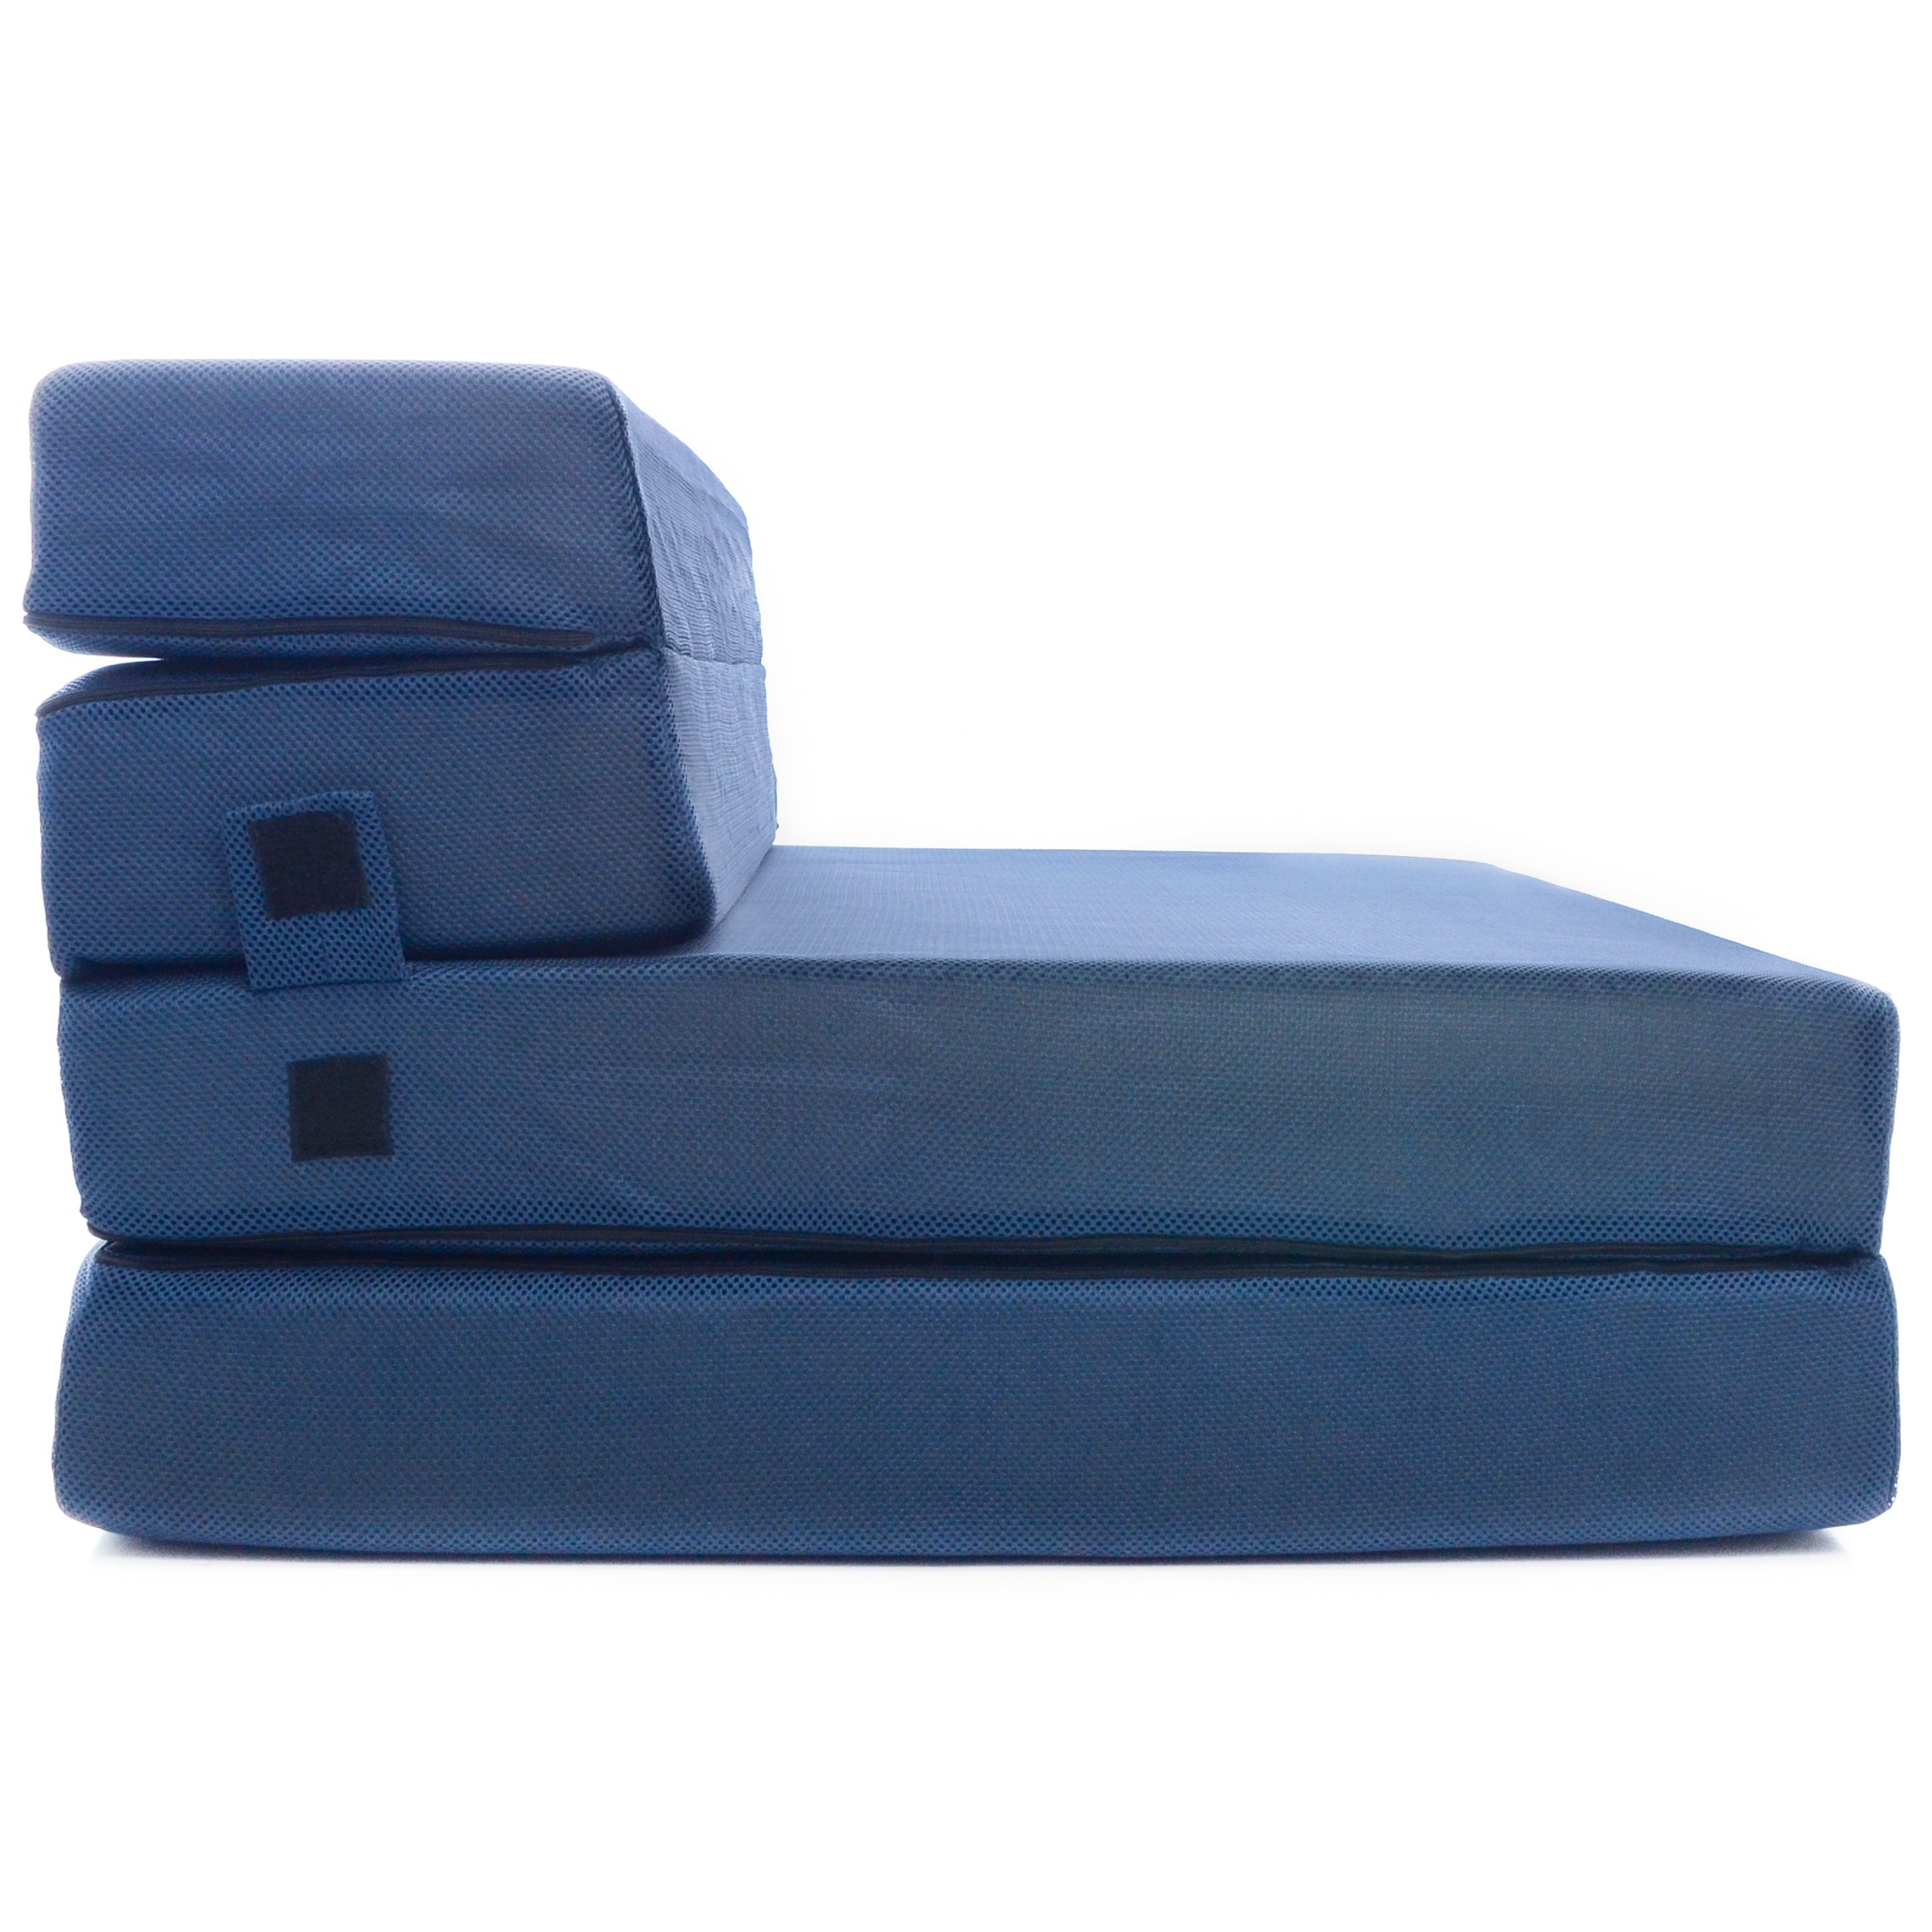 sofa in walmart armrest covers bed bath and beyond queen sleeper futon at blow up costco intex